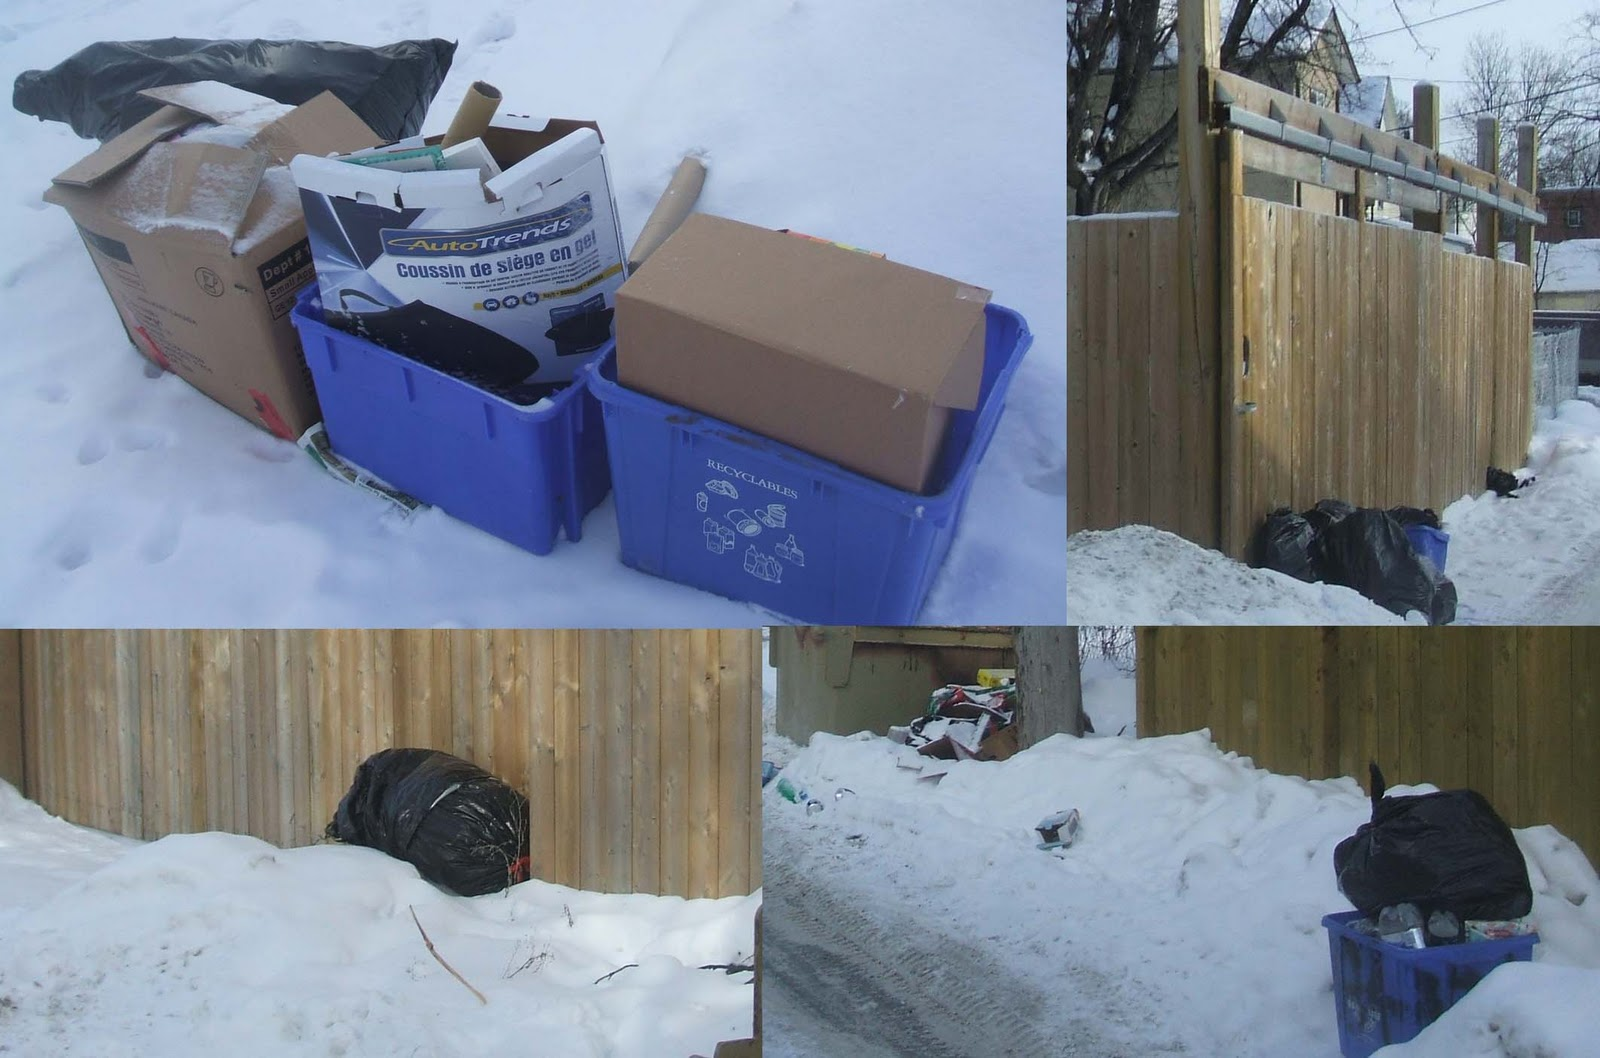 A Day In The Hood: Thursday is Garbage Day, Even After Christmas